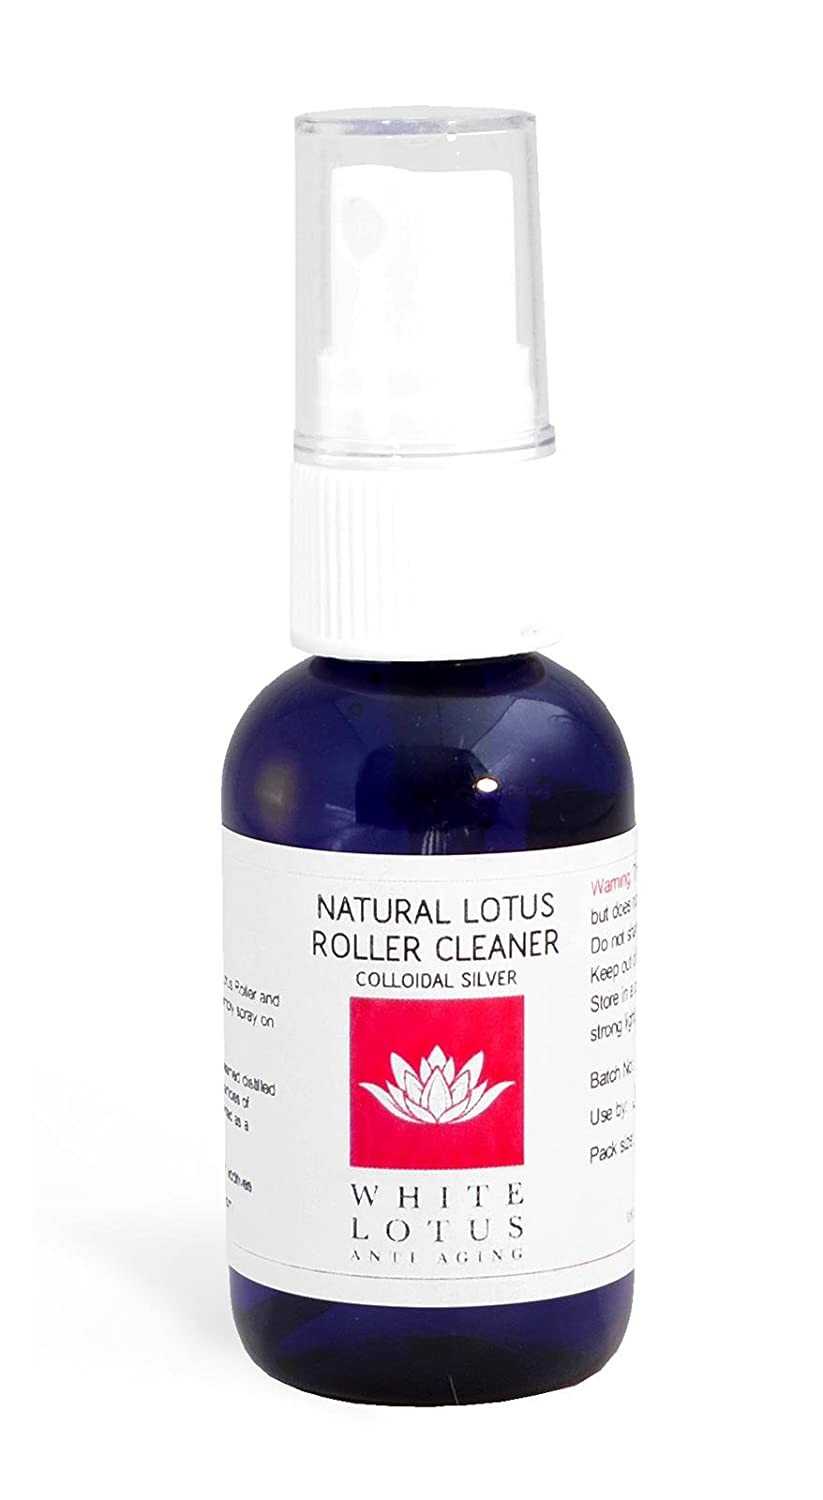 White Lotus Anti Aging: Kit Dermaroller- Derma Roller sin tóxicos, 0,5mm + Dermaroller Cleaner + Sérum Antiarrugas Orgánico Facial - Set Antiedad de ...